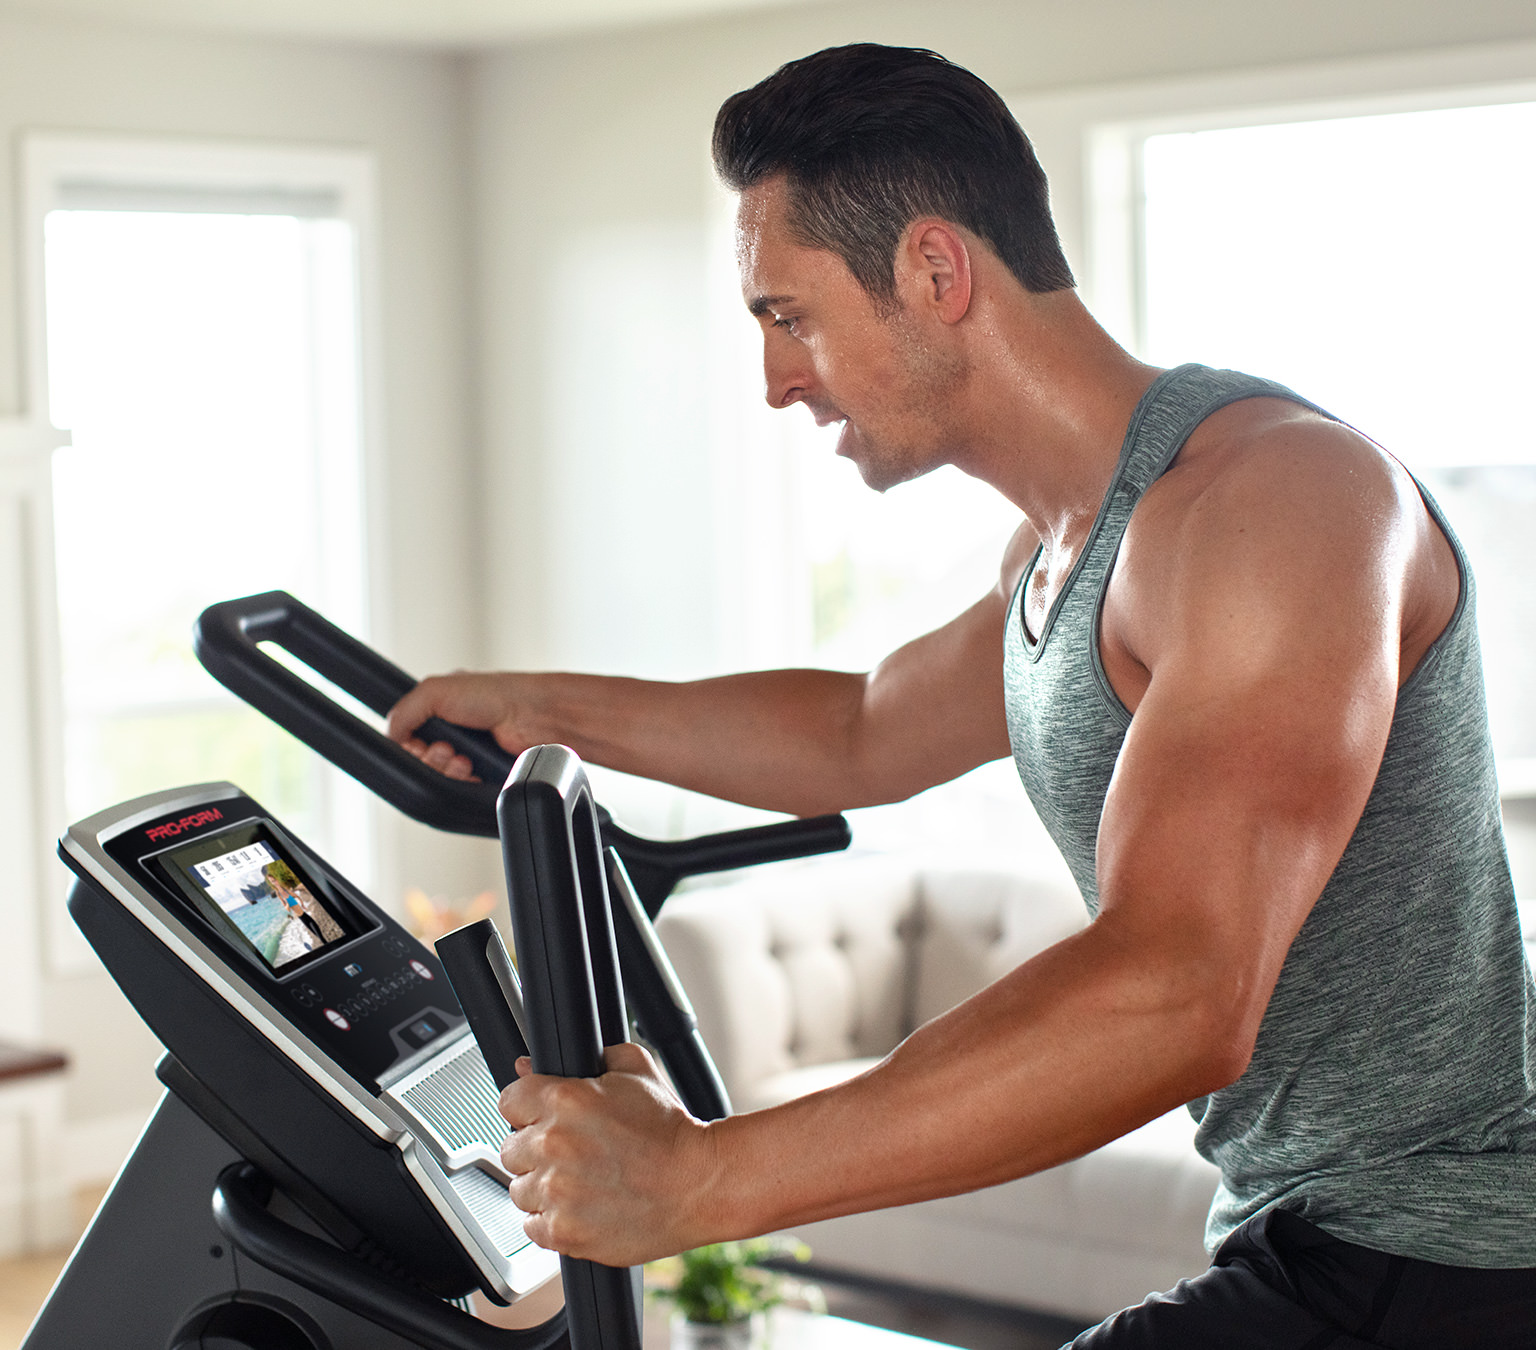 man on exercise equipment